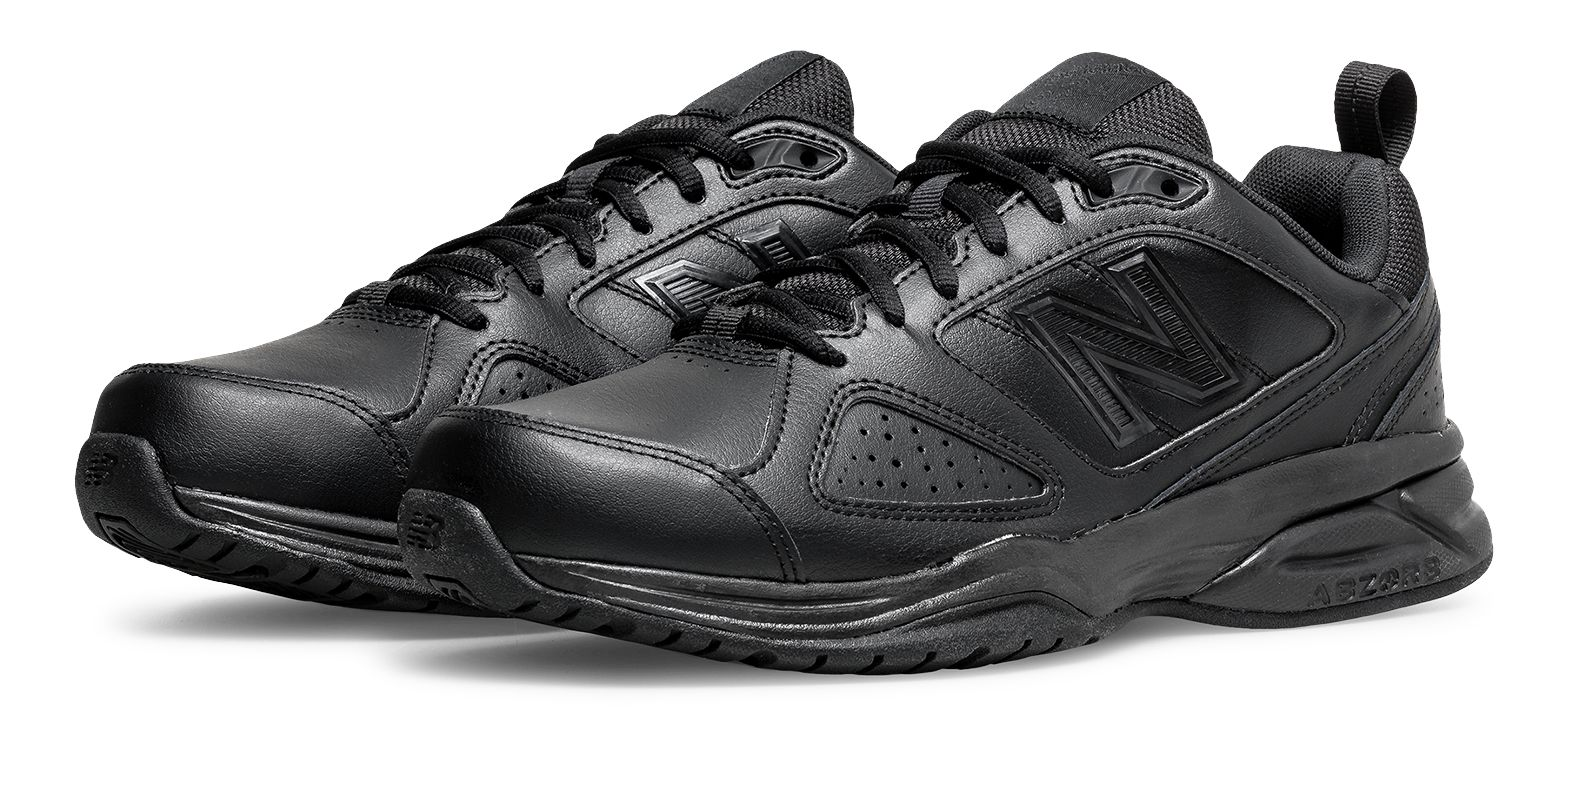 thumbnail 8 - New-Balance-624v4-Men-039-s-Running-Training-Shoes